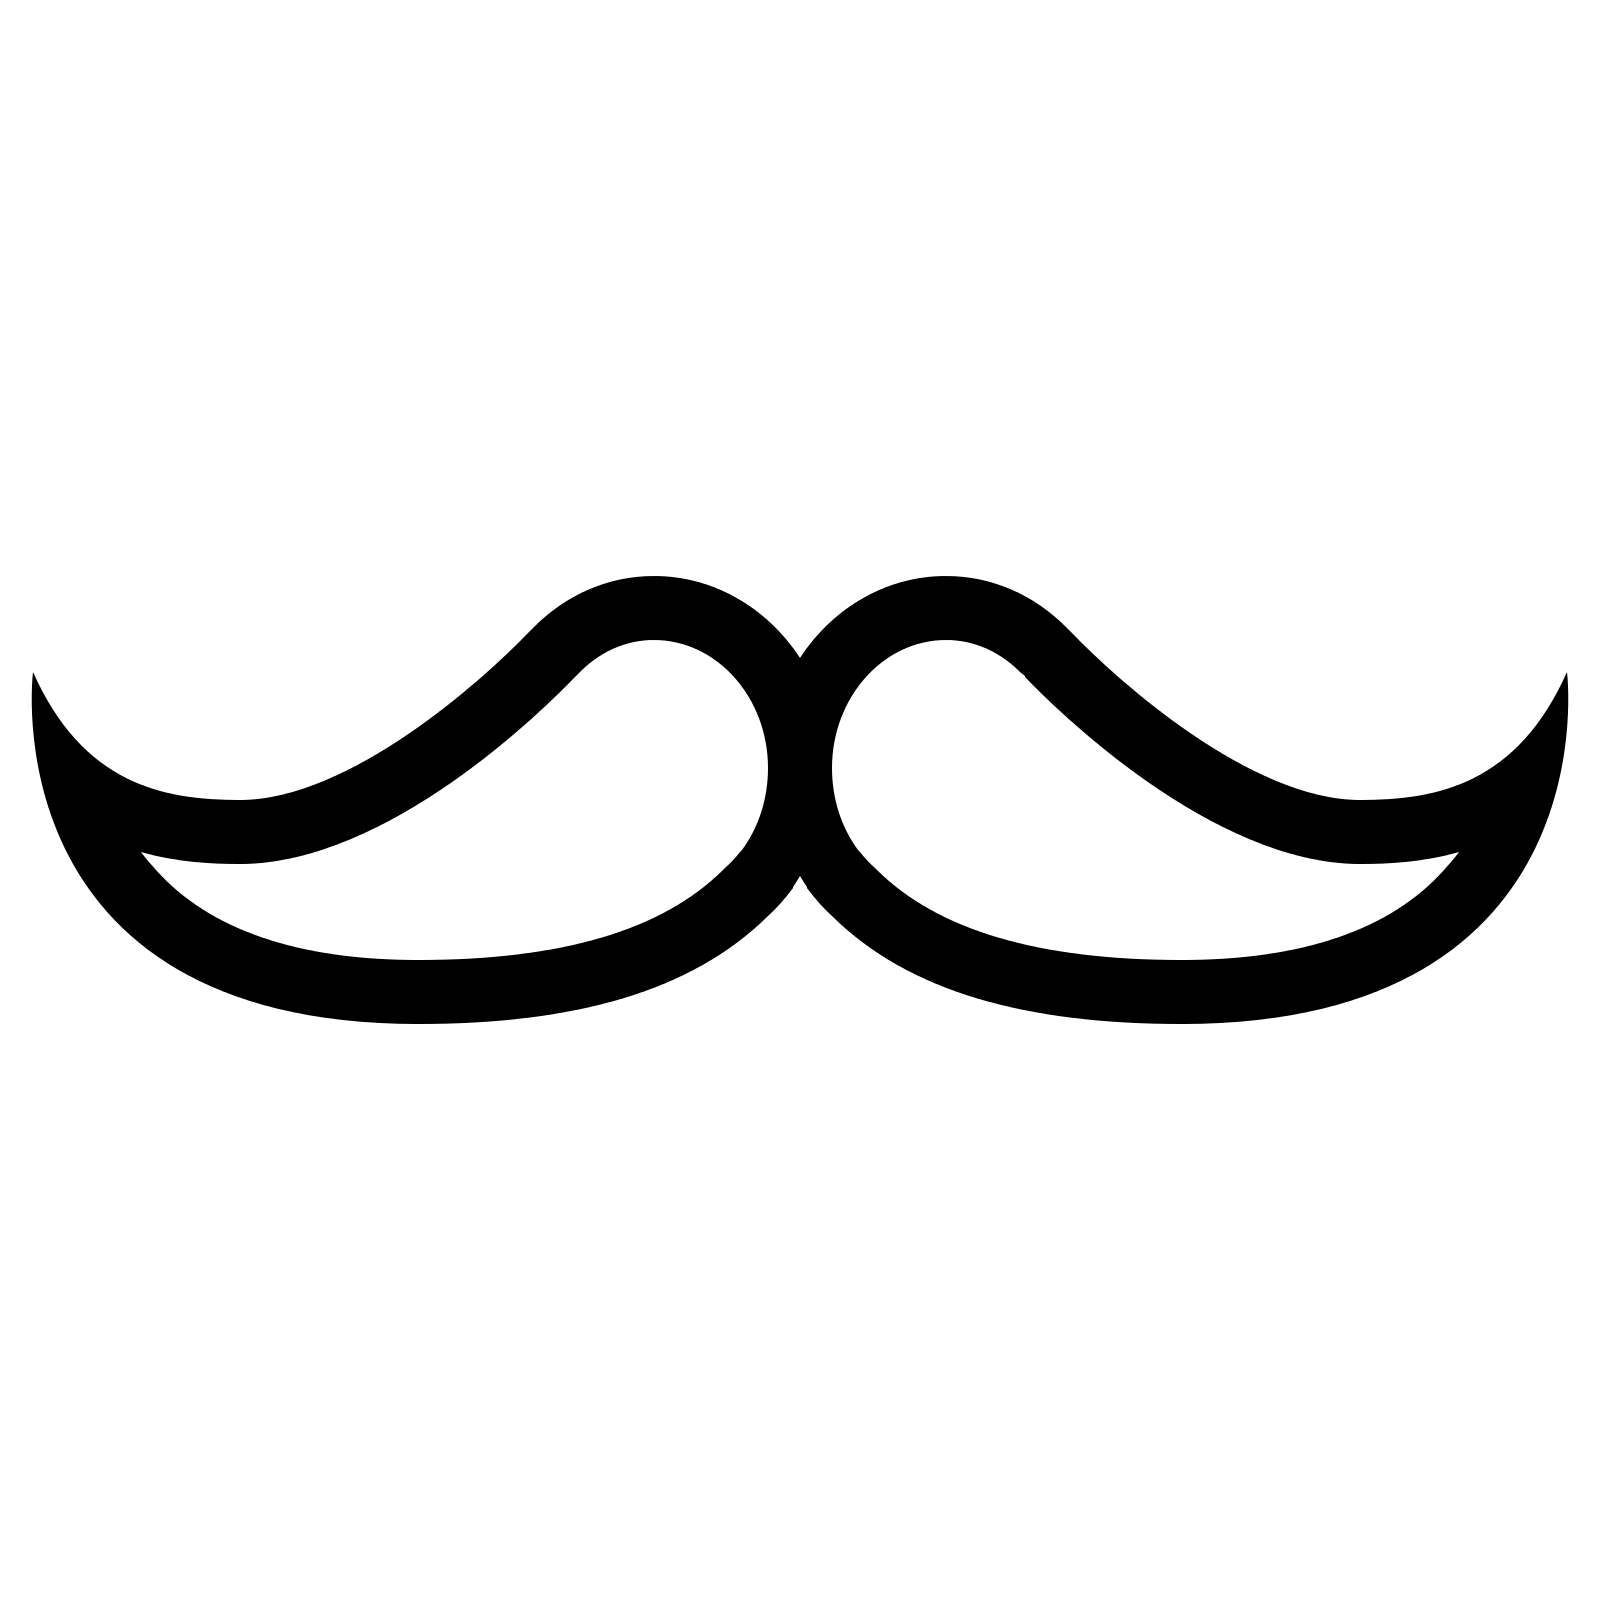 Mouth clipart black and white.  mustache clip art